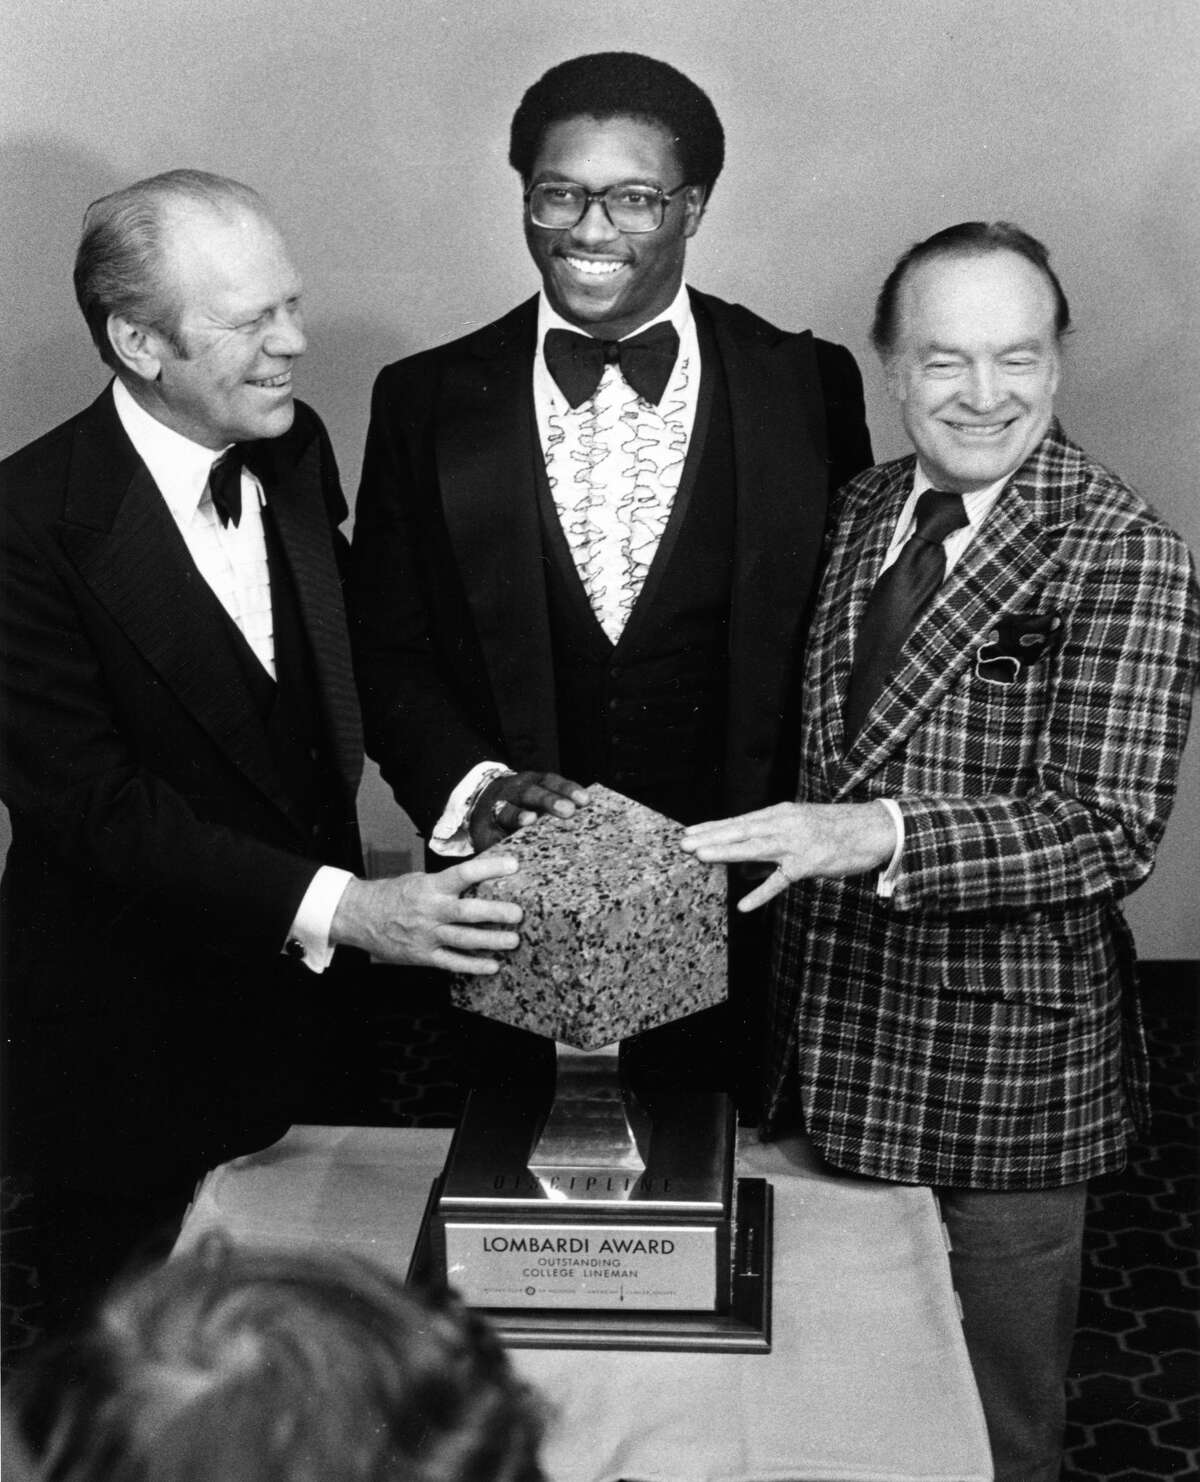 01/27/1977 - Former President Gerald Ford with Lombardi Award recipient, University of Houston's Wilson Whitley, and comedian Bob Hope. Since 1970, the Rotary Club of Houston has annually presented the Lombardi Award to the best collegiate defensive lineman.